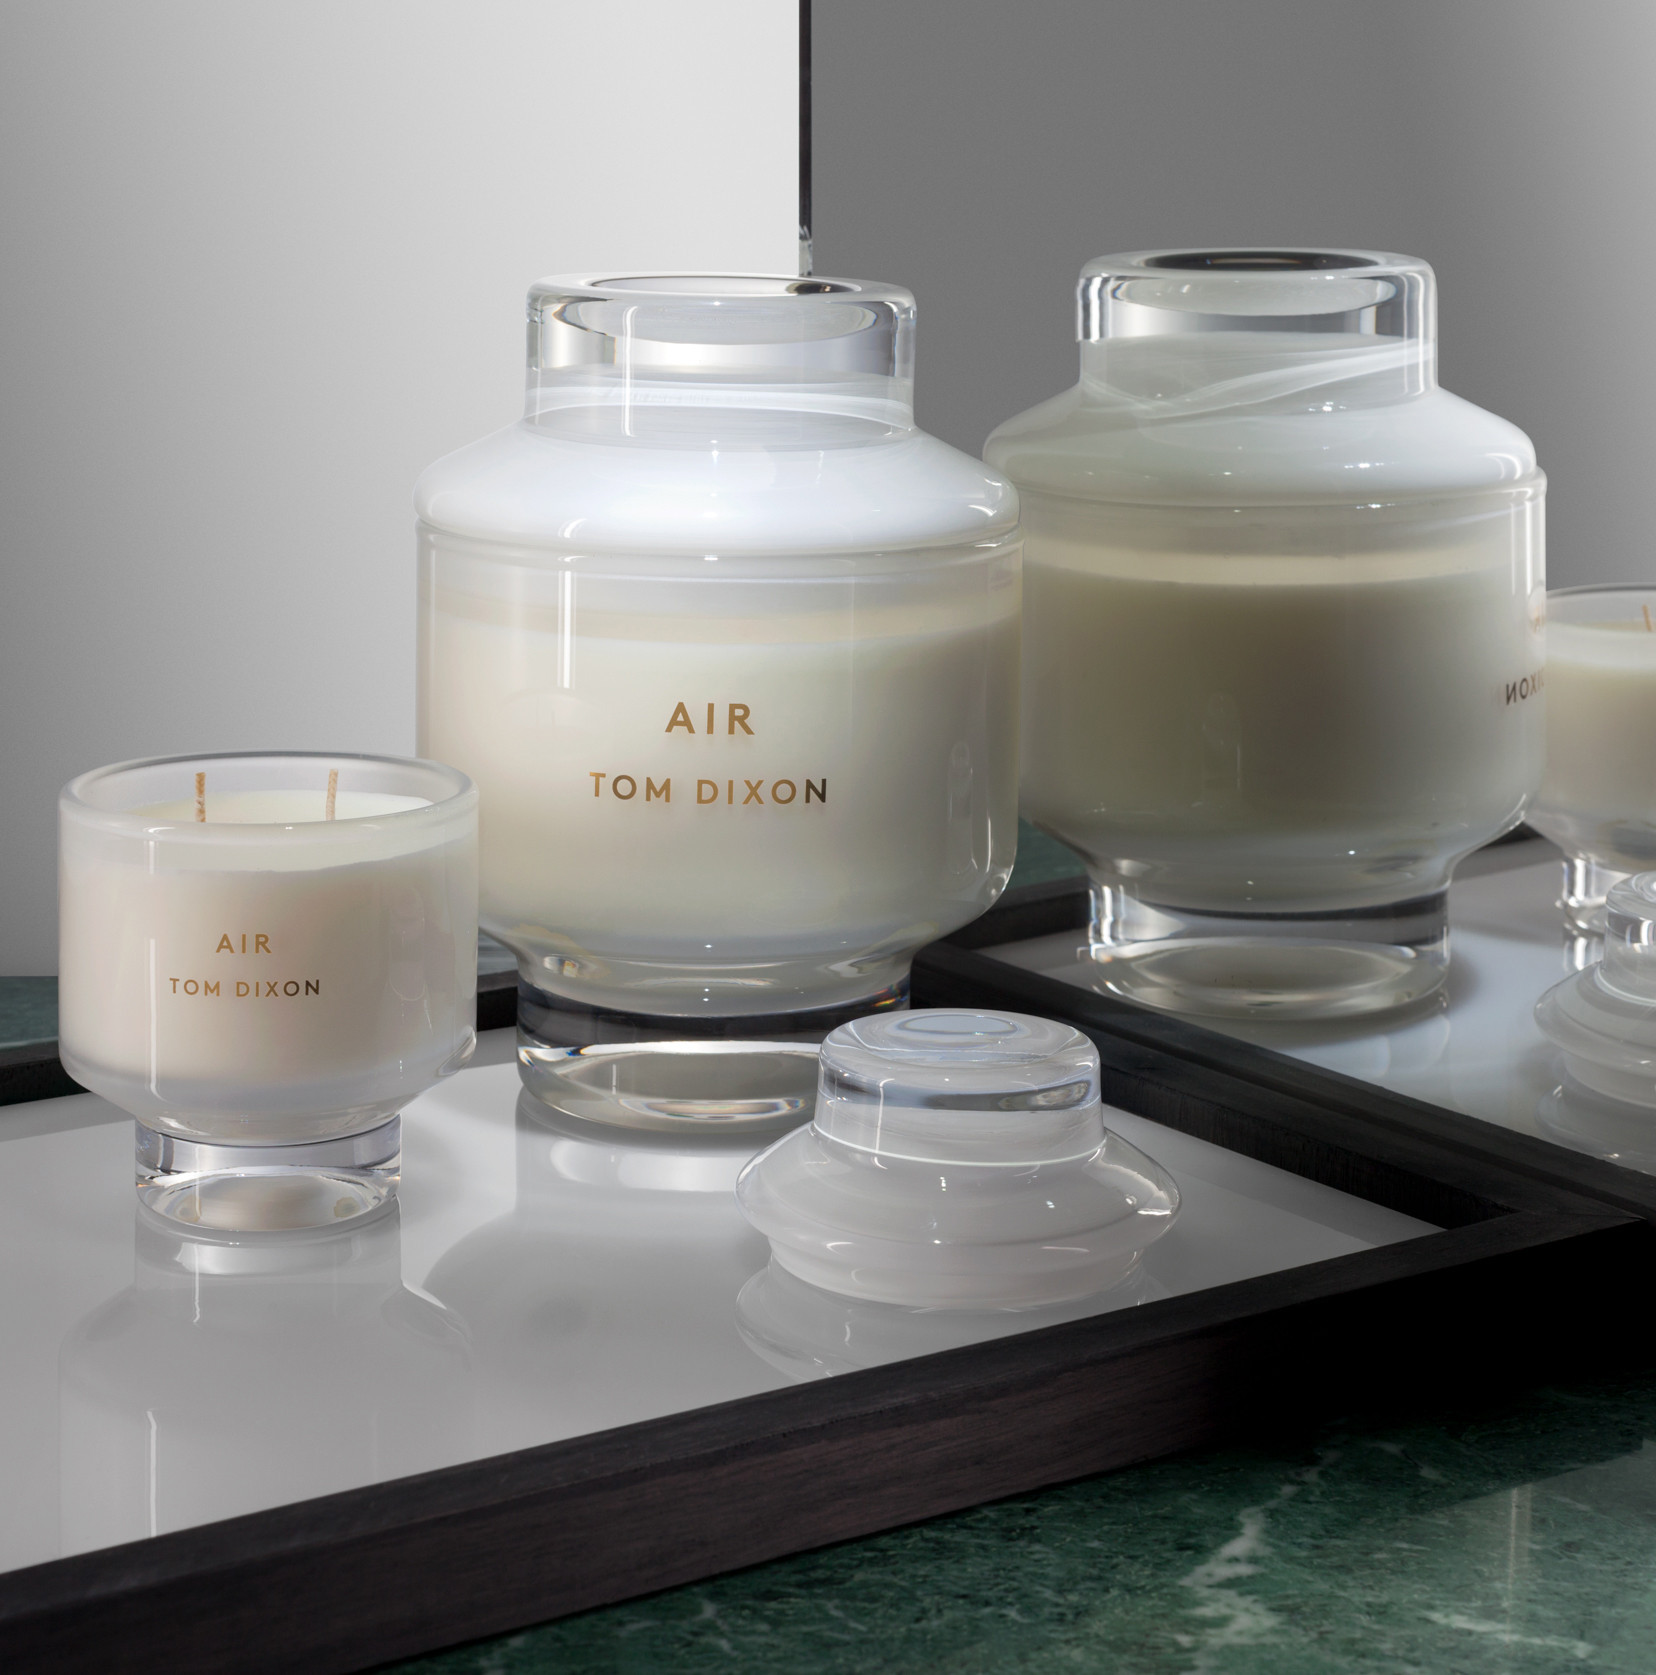 Tom Dixon Medium Air Candle